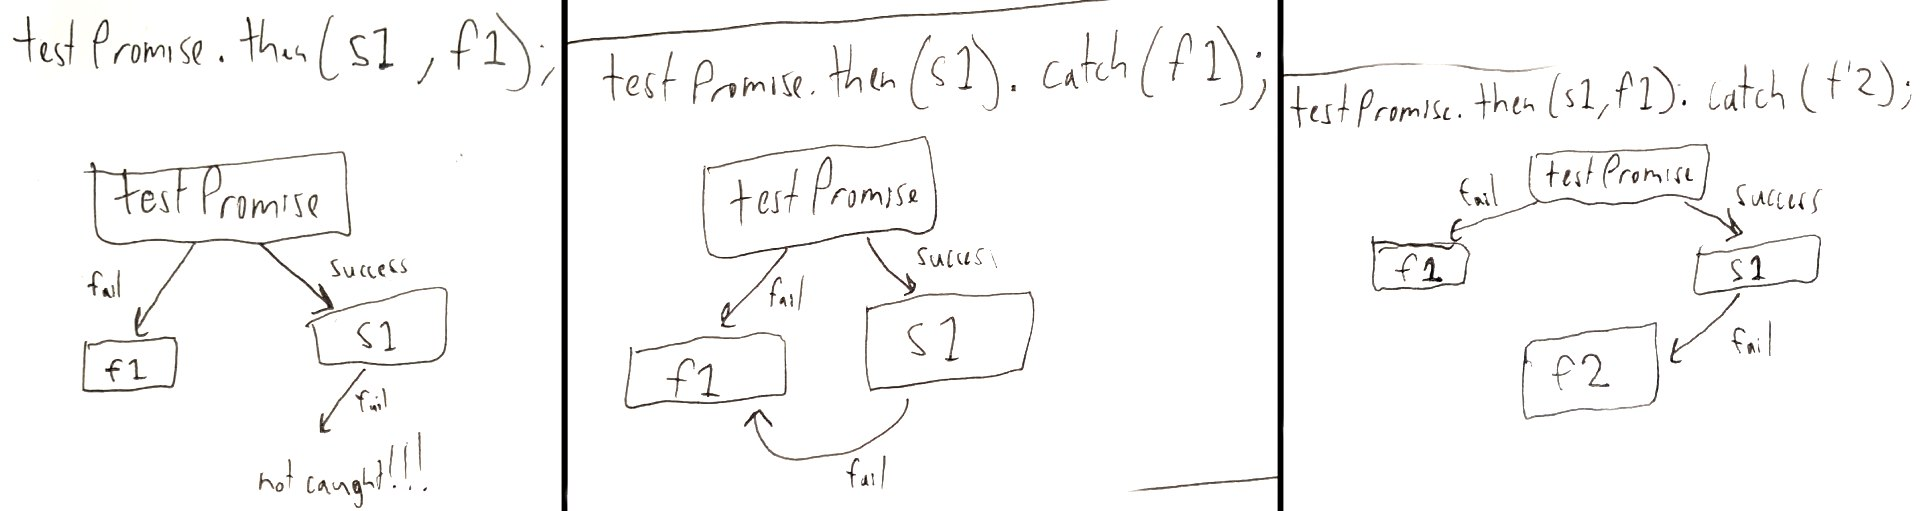 Promises error handling sketch